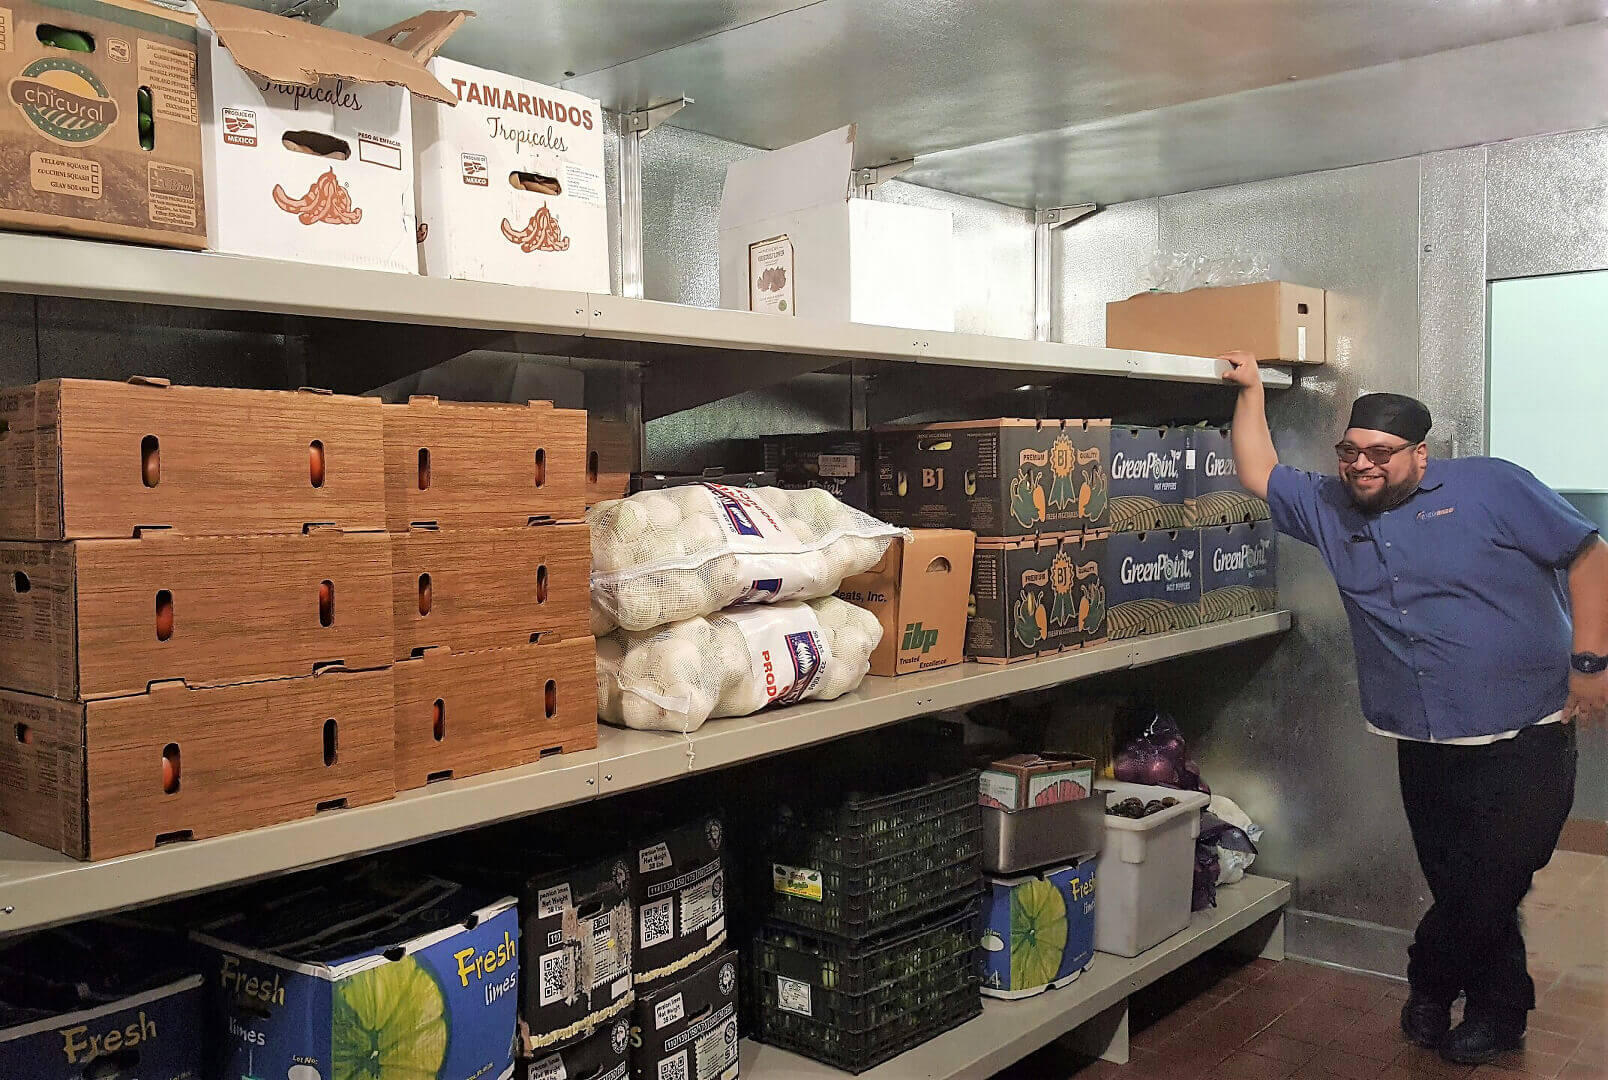 Restaurant Walk-in Cooler Shelving by E-Z Shelving Systems